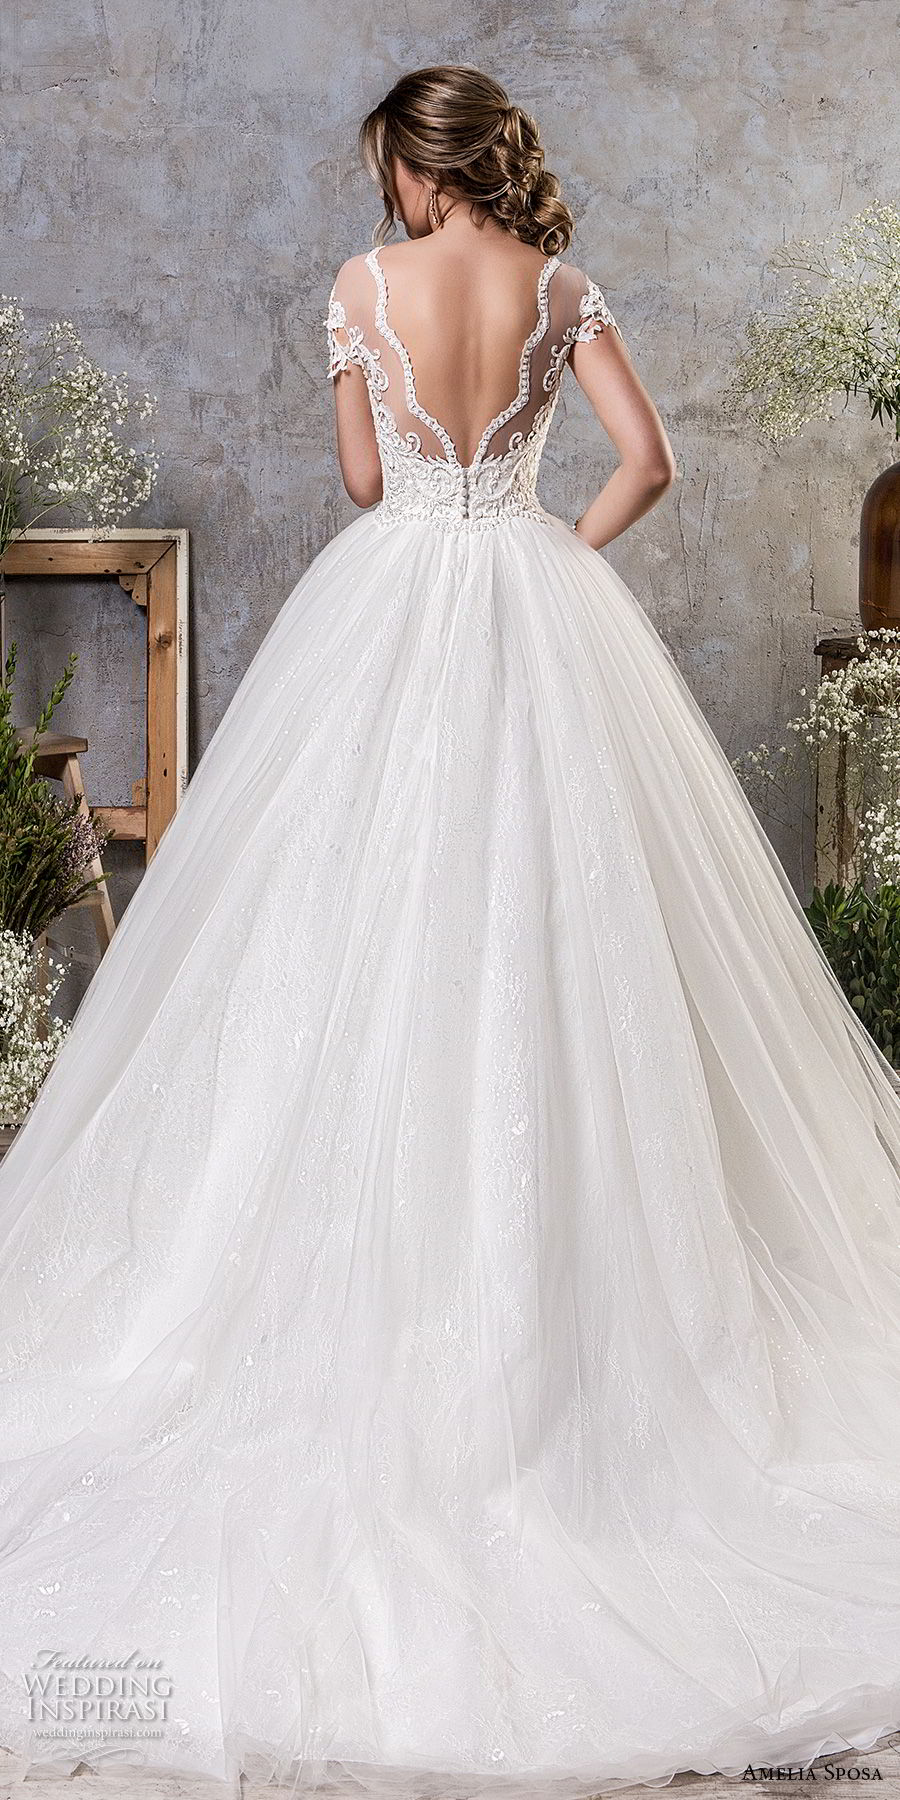 amelia sposa fall 2018 bridal short sleeves illusion bateau sweeetheart neckline heavily embellished bodice ball gown a line wedding dress open v back chapel train (14) bv